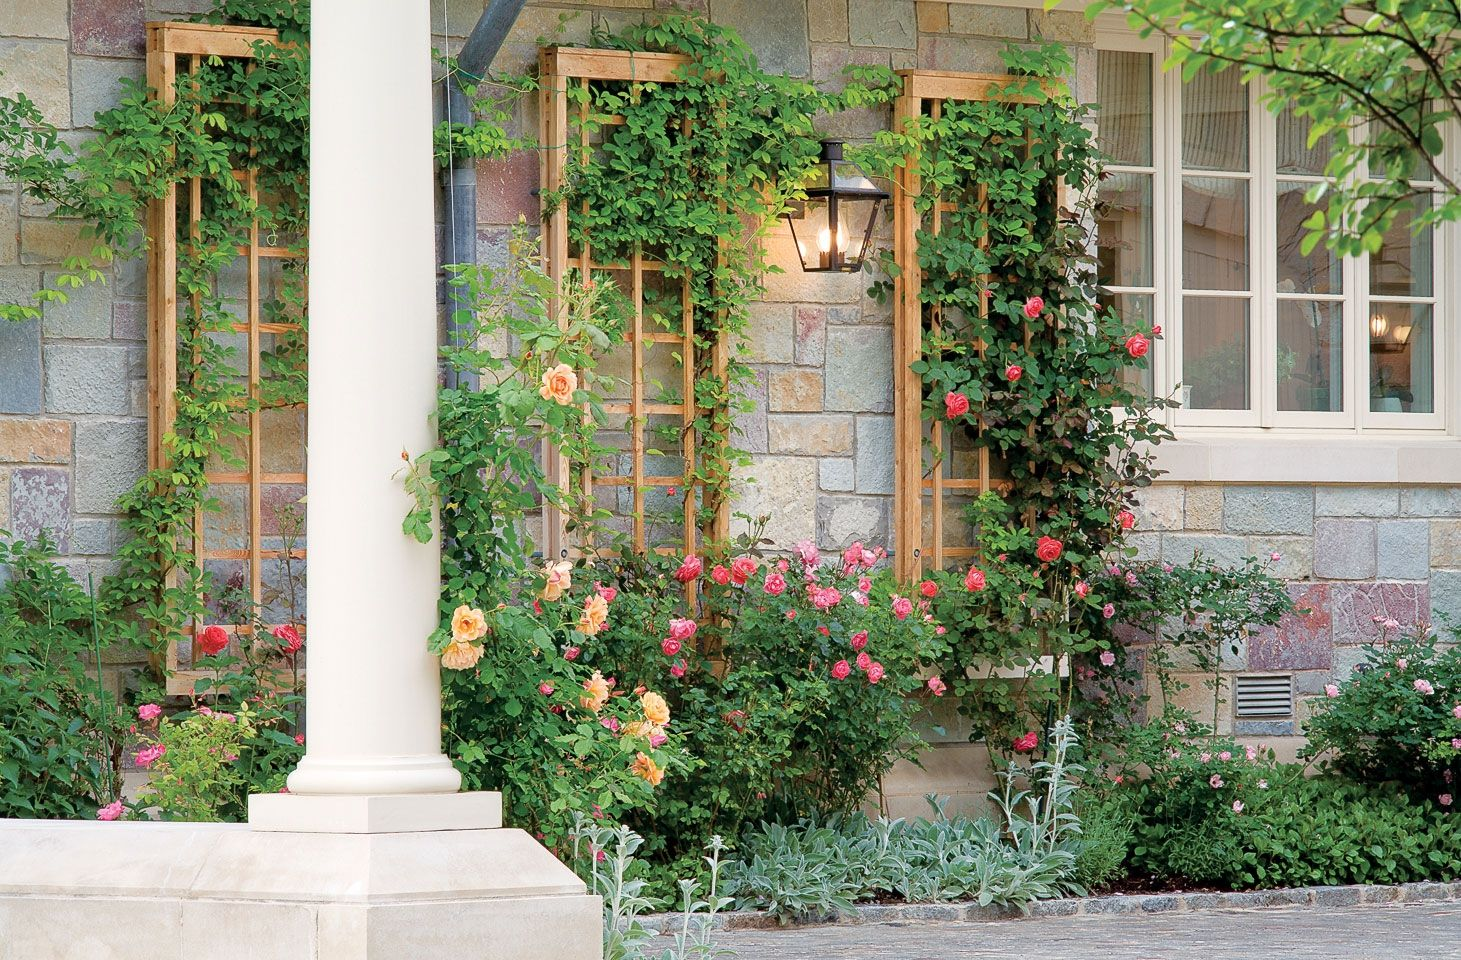 Ordinary Garden Trellis Ideas 10 Of The Best Part - 2: Garden Trellis Ideas 10 Of The Best